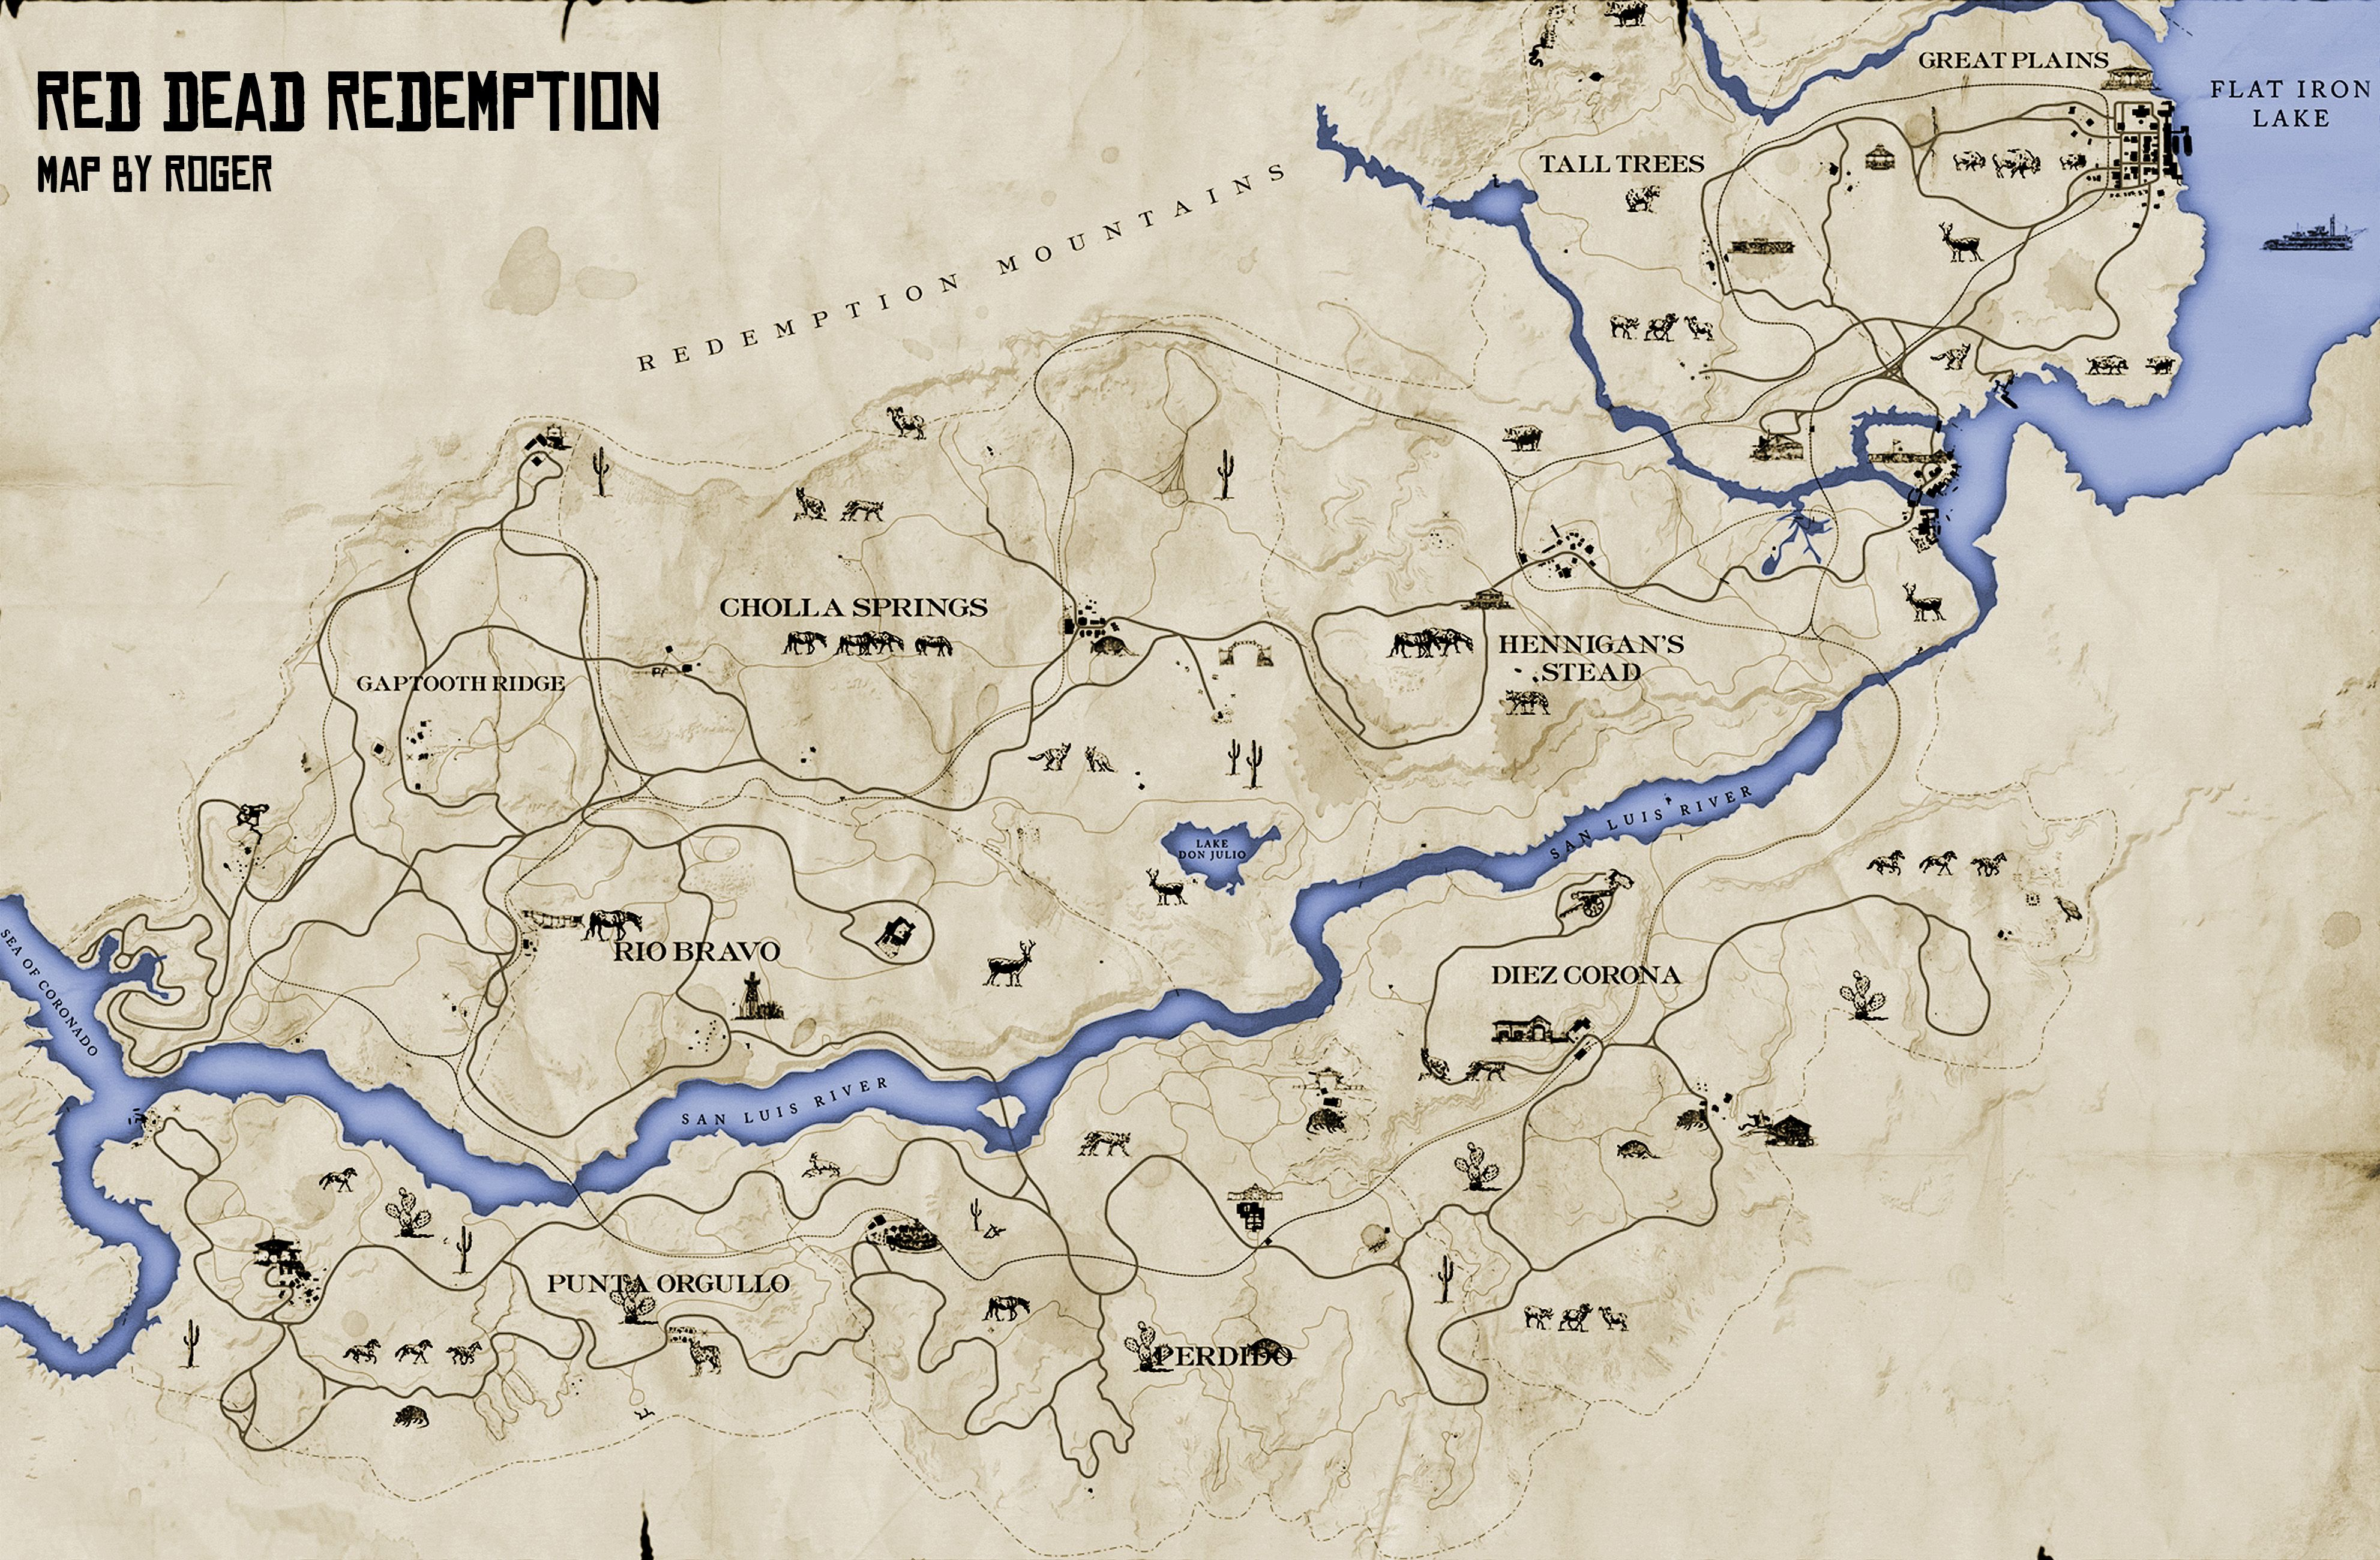 Red Dead 2 World Map.Map From Video Game Red Dead Redemption Game Is Set In The Old West